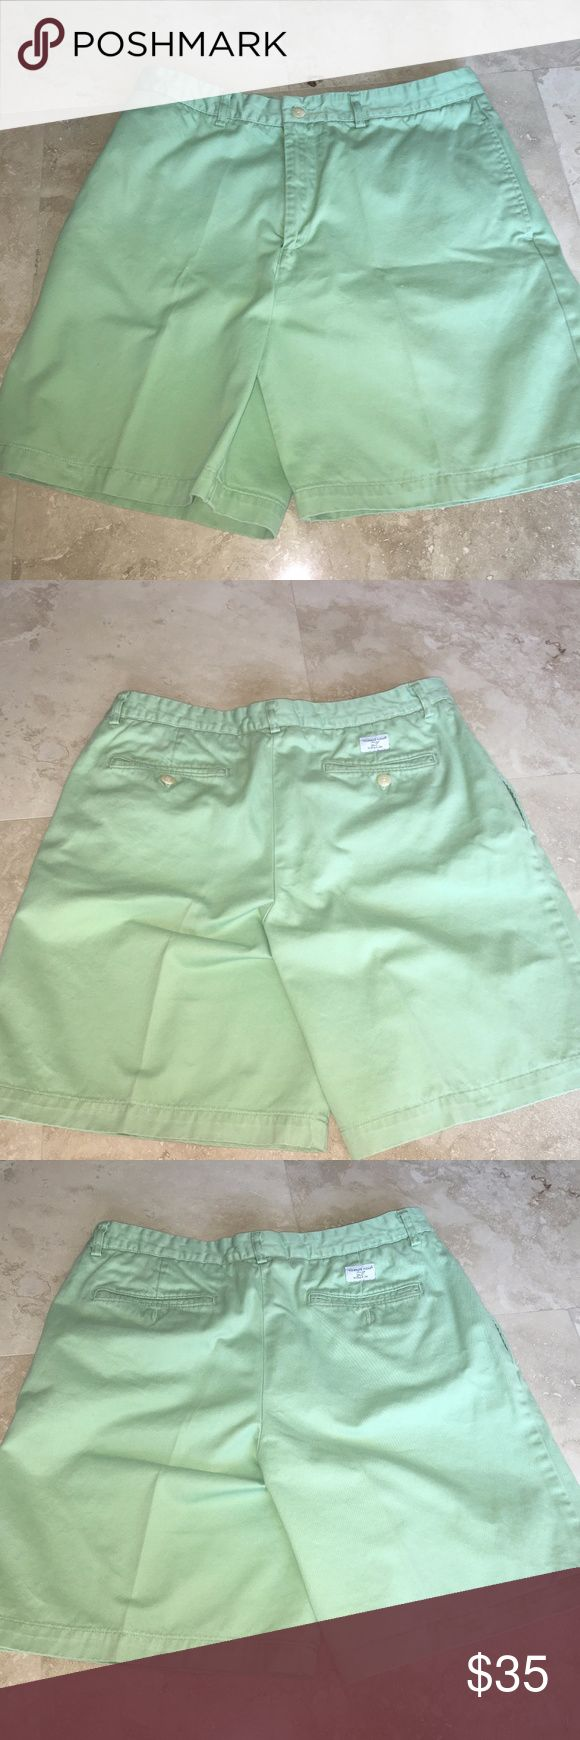 MEN'S Vineyard Vines mint green shorts Size 34 Fabulous Vineyard Vines shorts in light green.  Side pockets and back pocket. Flat front.  In Excellent pre-owned condition. Size 34 • 1/4-top pockets to reduce bunching  • A true straight leg lends a clean look Vineyard Vines Shorts Flat Front